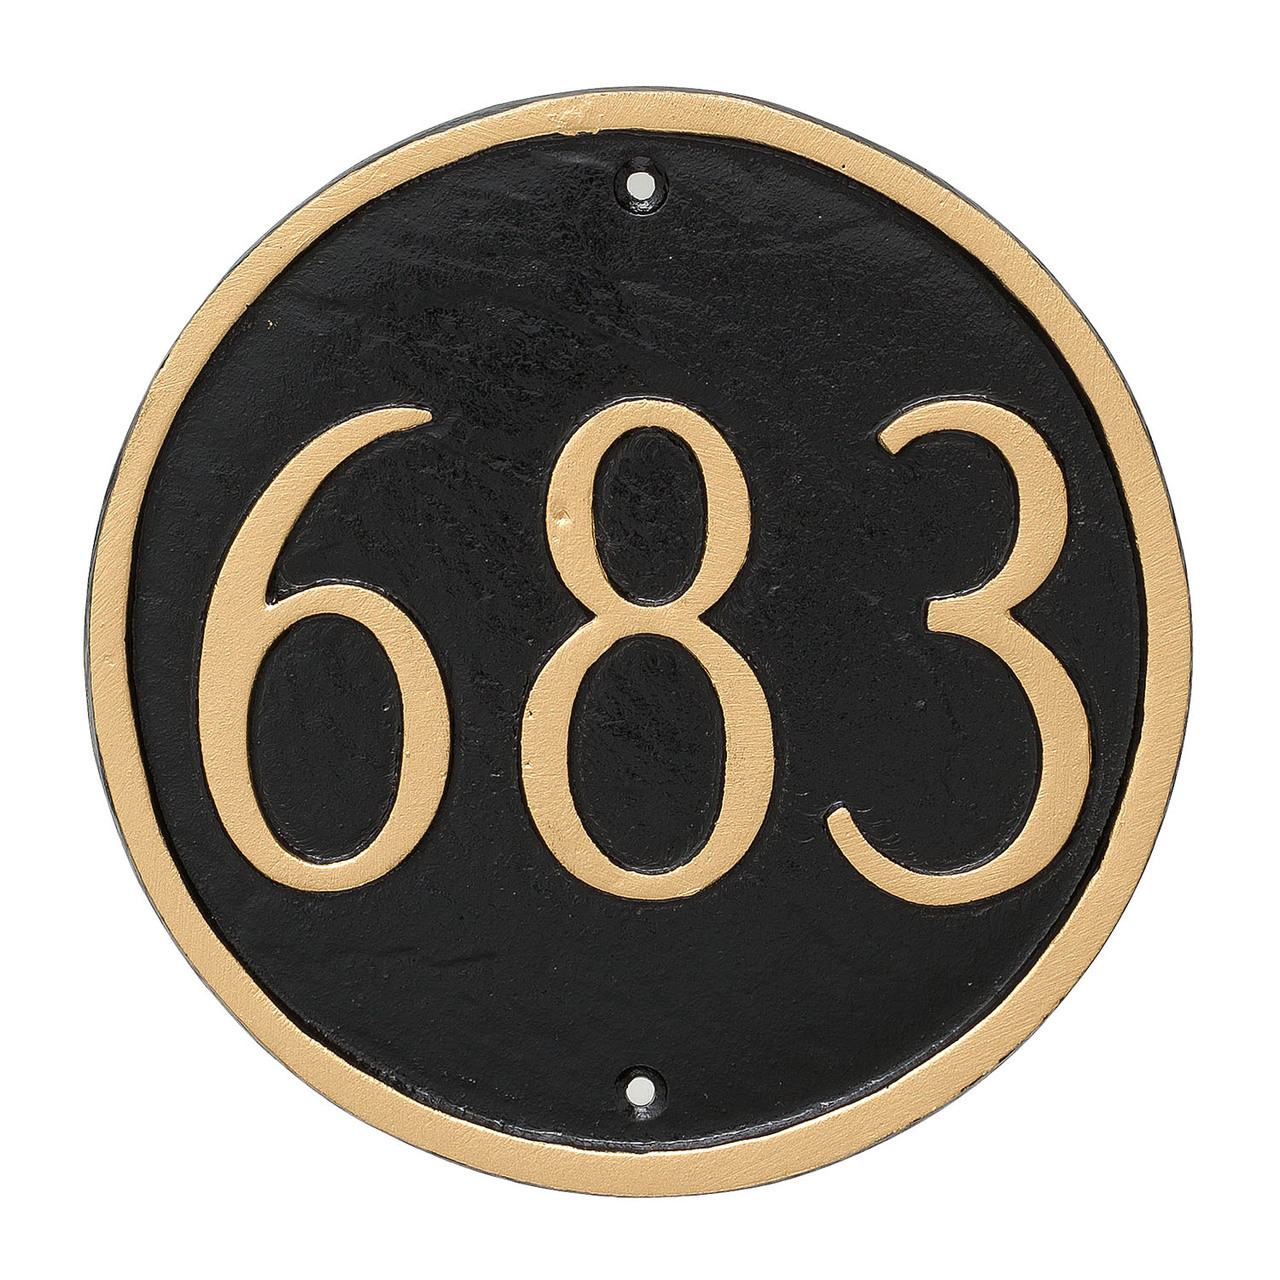 Round House Number Plaque (Estate Size) shown in Black/Gold combination